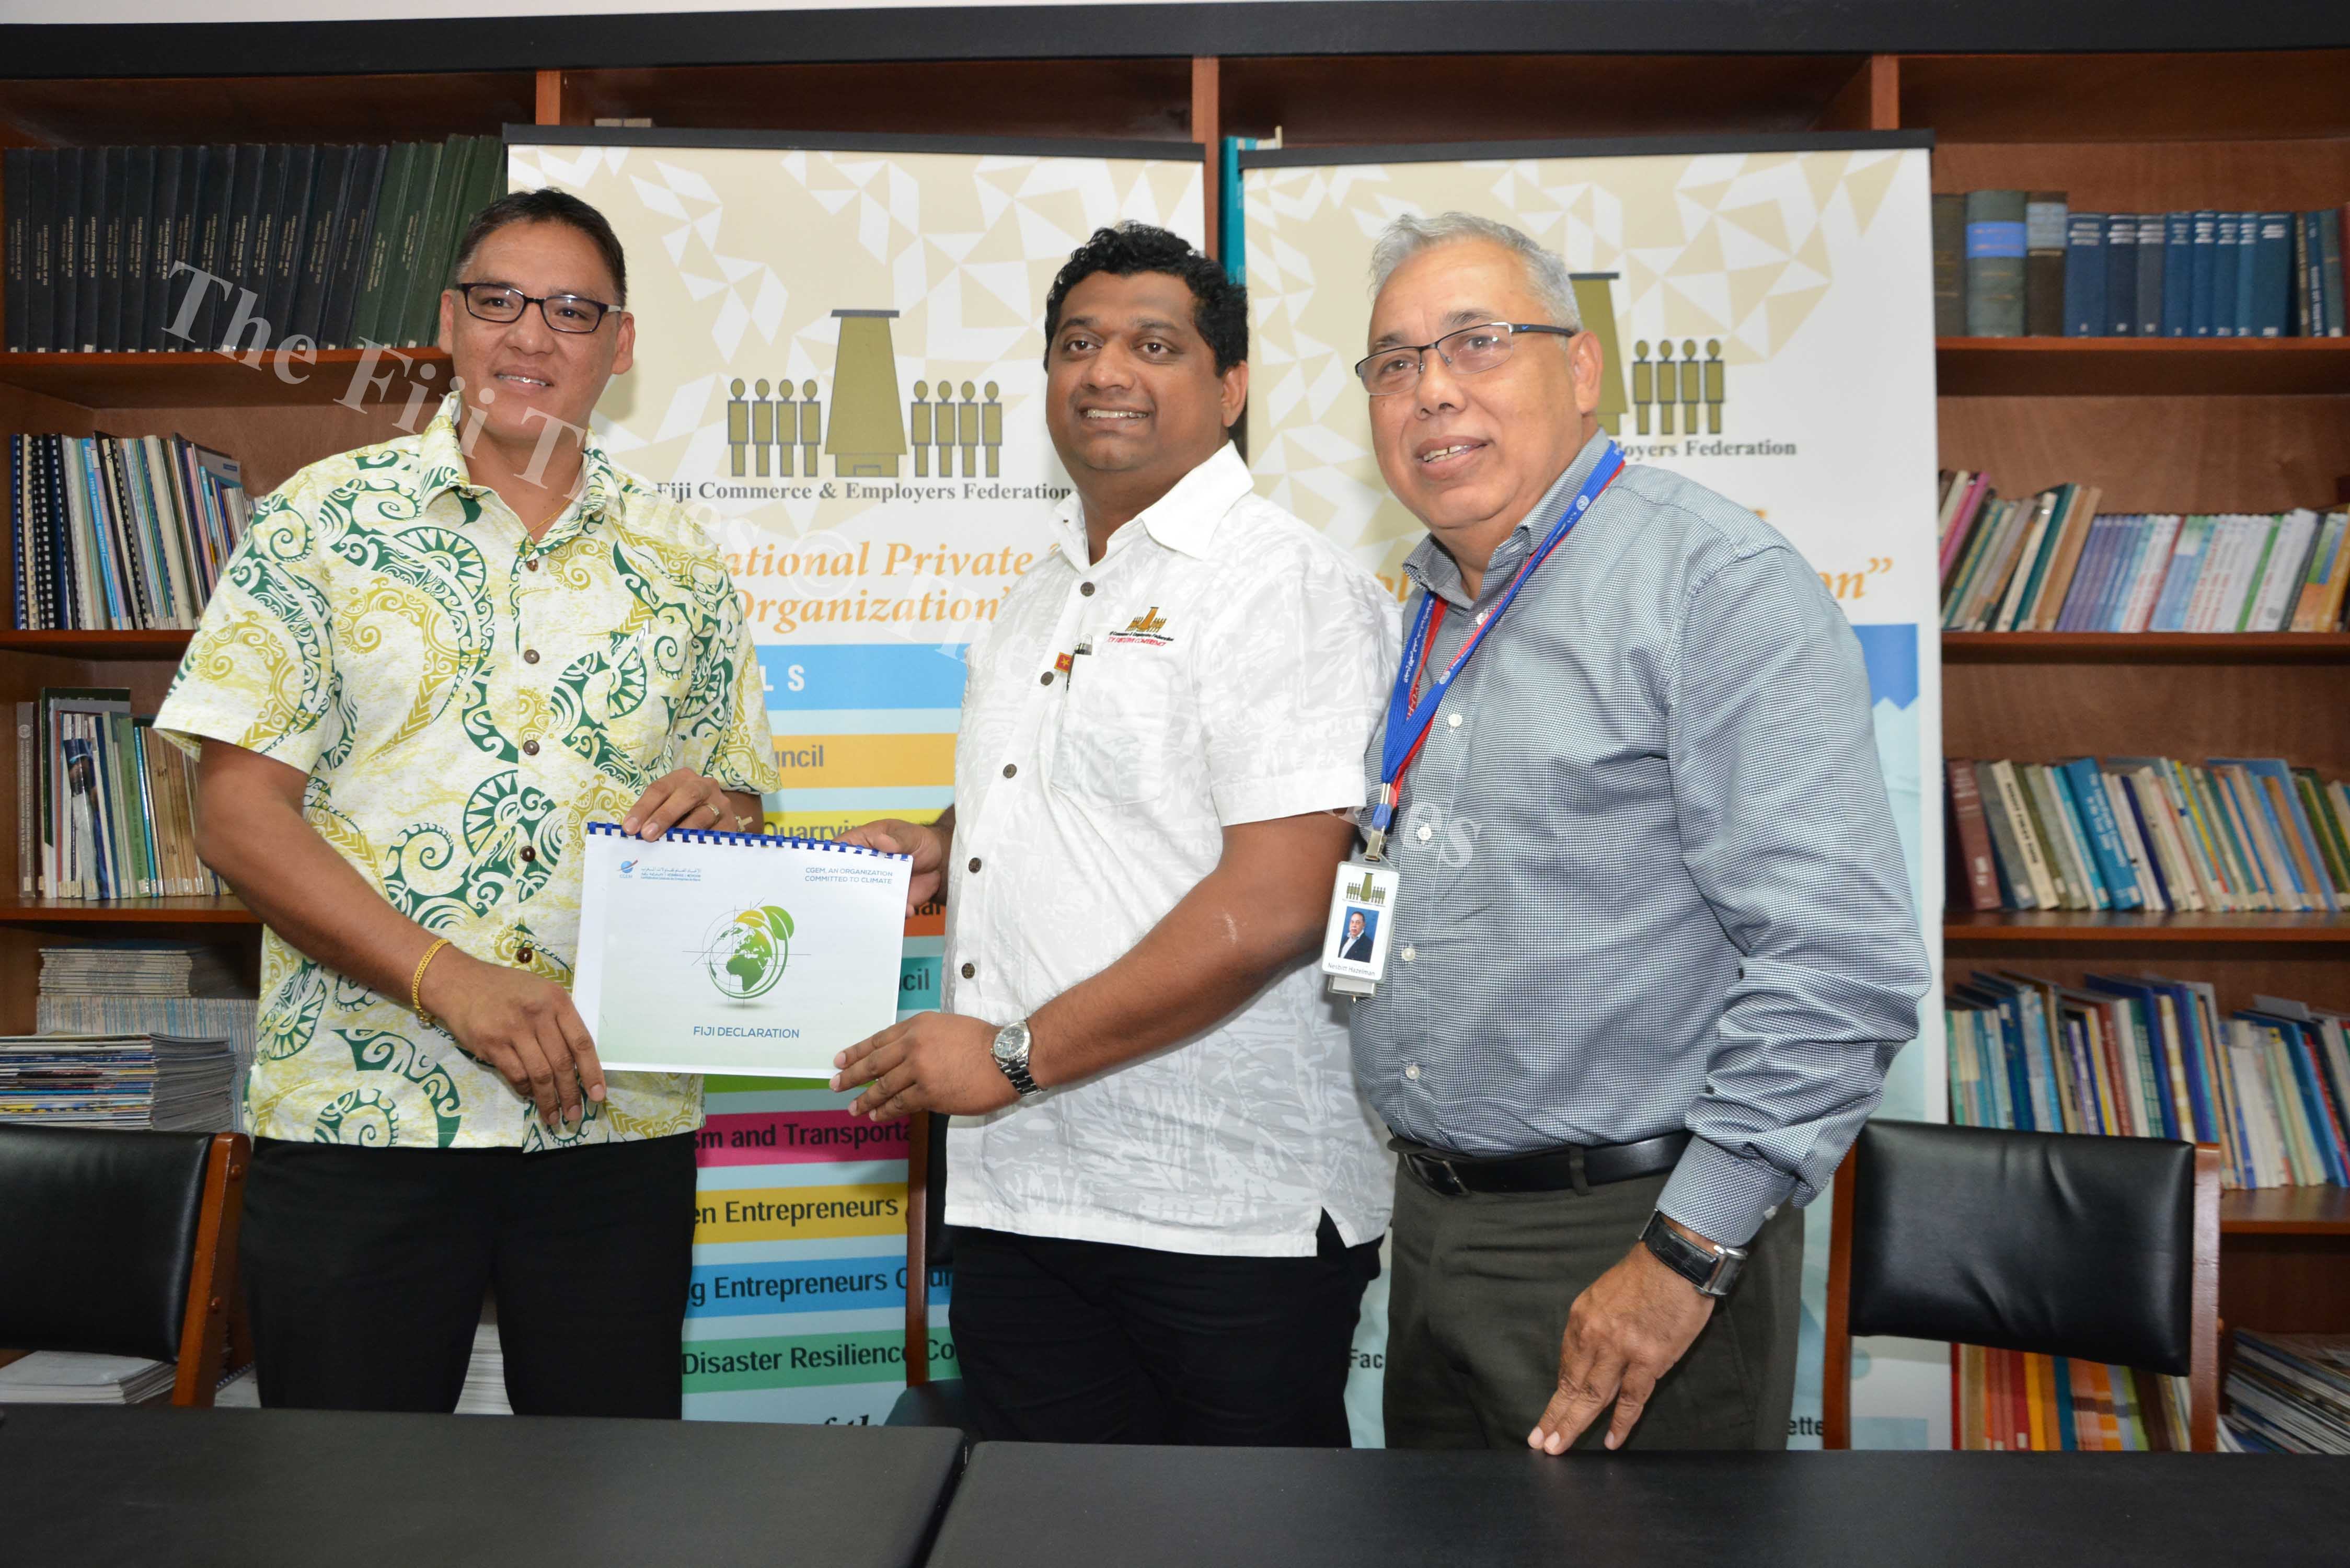 Fiji Commerce & Employers Federation CEO  Nesbitt Hazelman (right) with the Immediate Past President Himen Chandra (centre) and Fiji Business Disaster Risilience Council Vice Chair Leonard Chan during the official handover of the presidency of the MBA4 Climate (Marakech Business Action for Climate) Declaration. Picture: JOVESA NAISUA